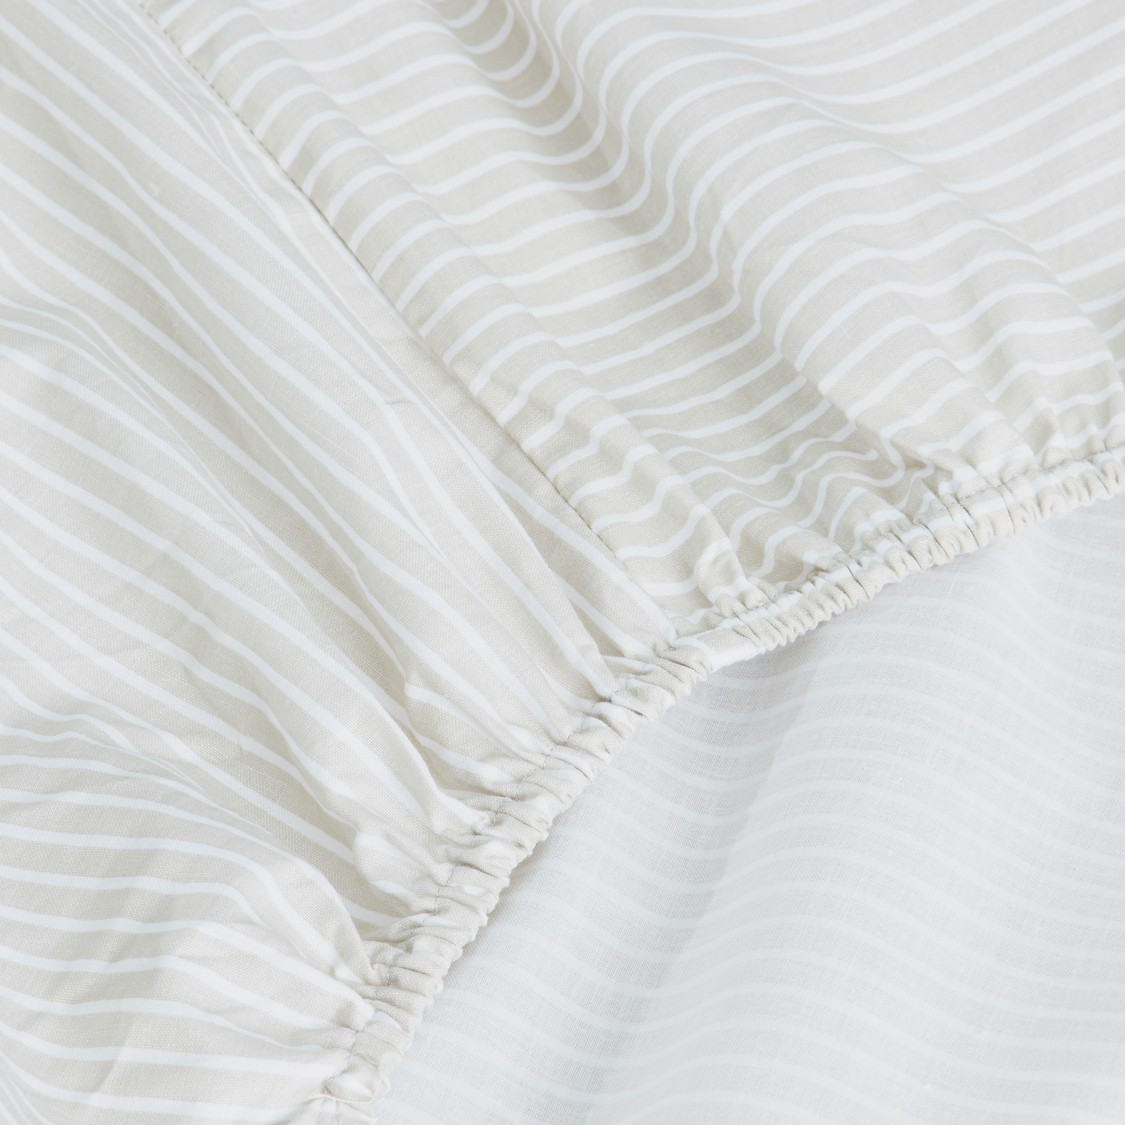 Striped Fitted Sheet with Elasticated Hem - 200x180 cms